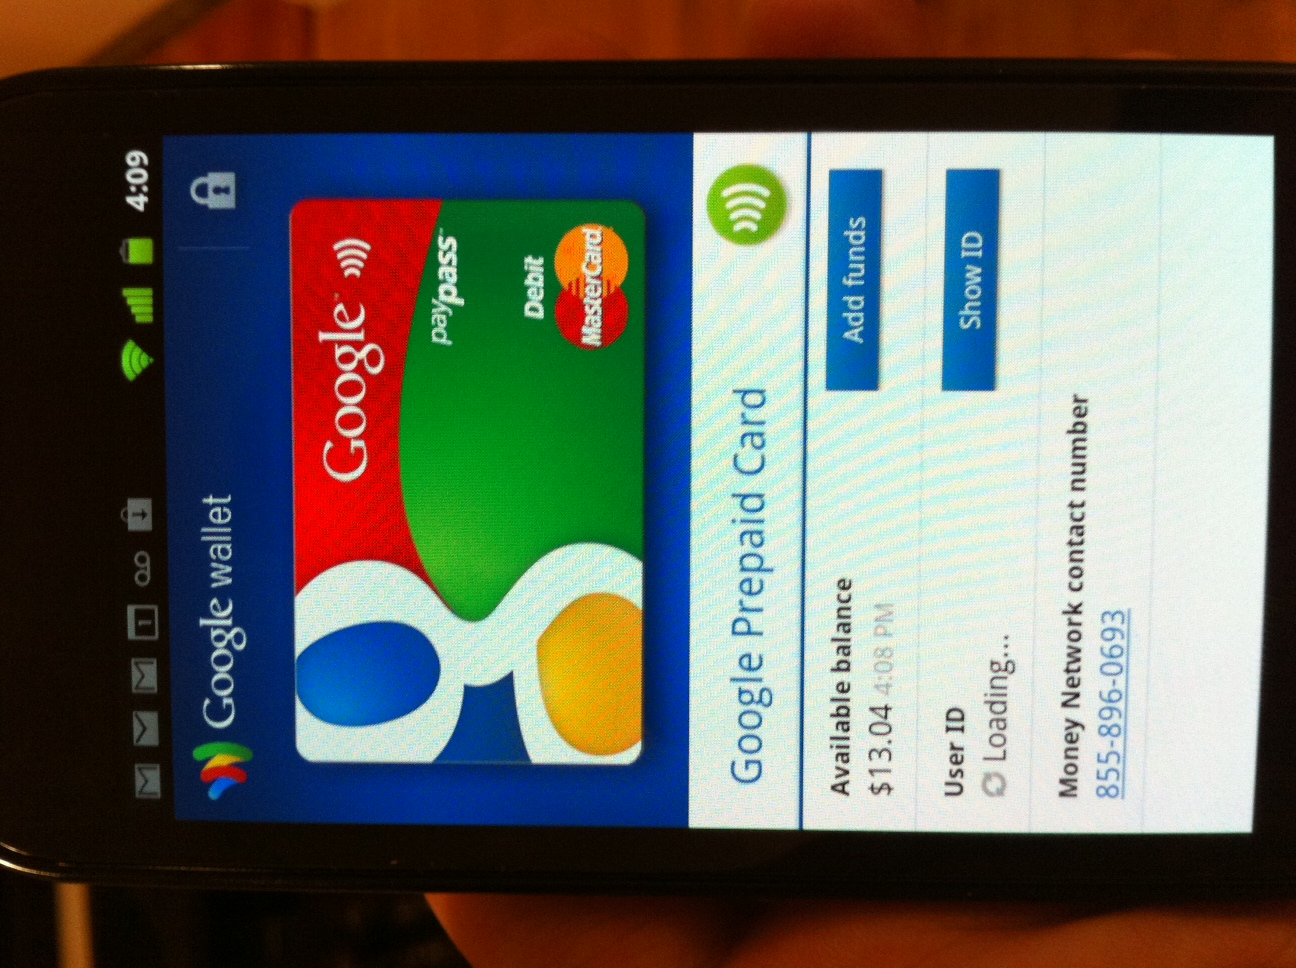 how to block lost credit card throught mobile application